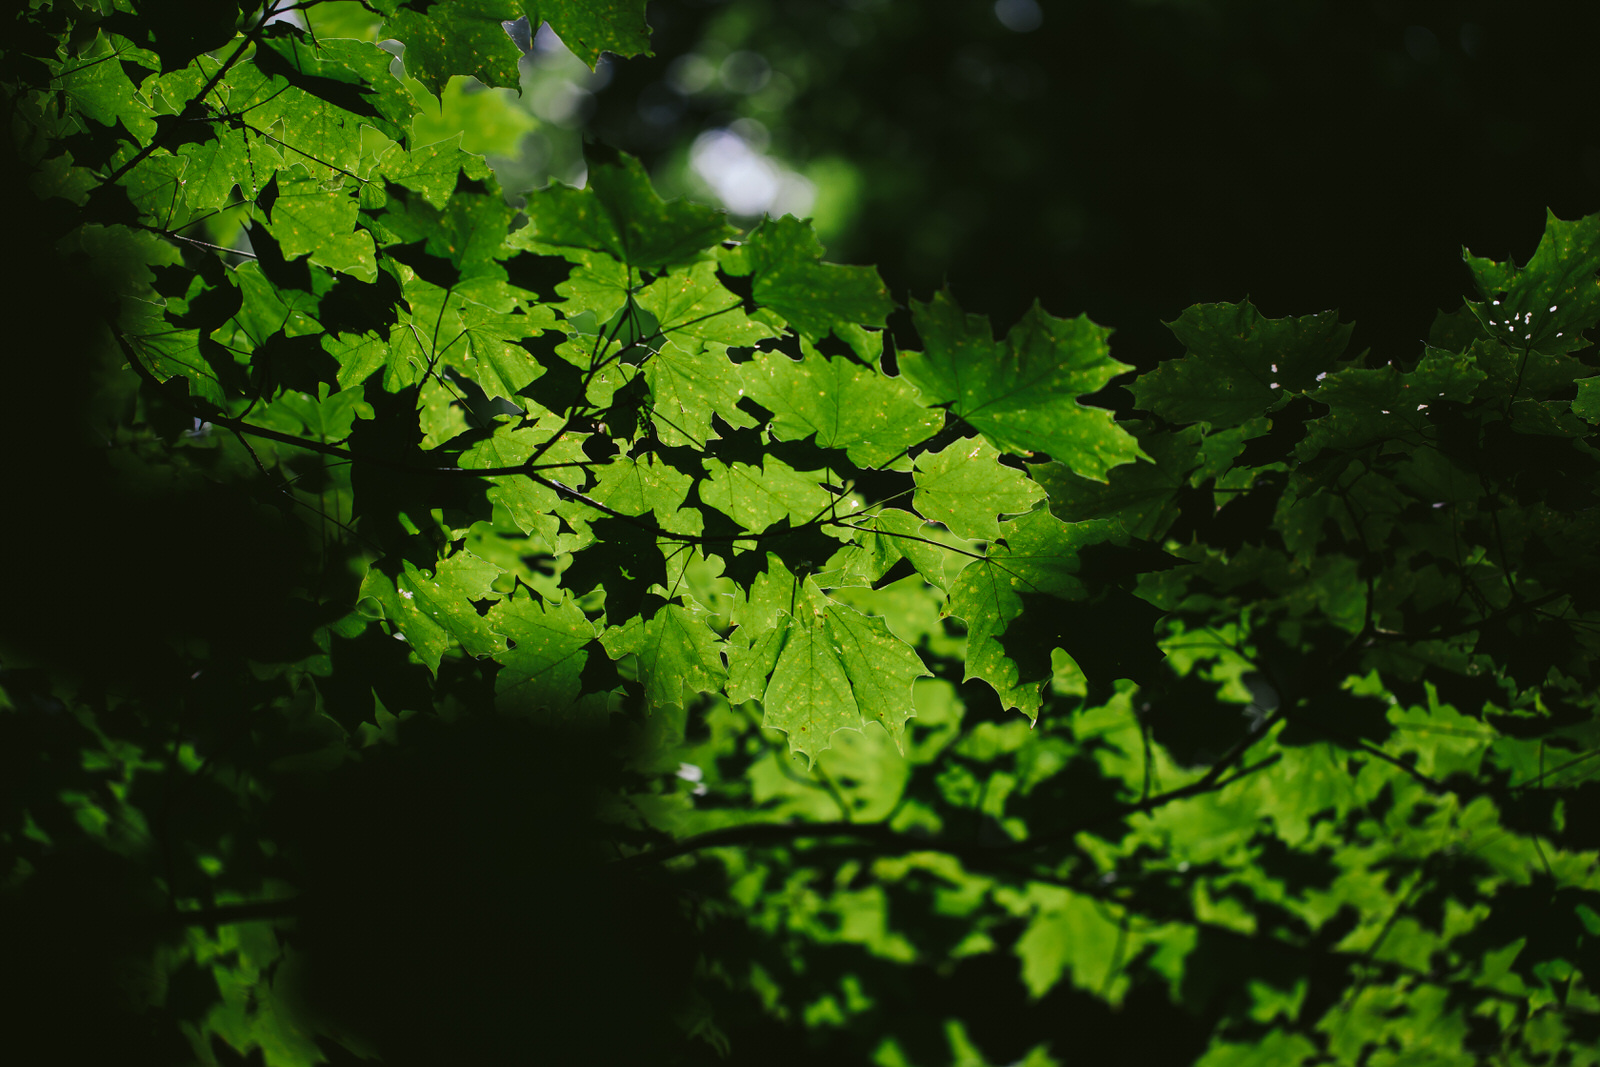 green-leaves-lake-radnor-tennessee-tiny-house-photo-travel-photography.jpg